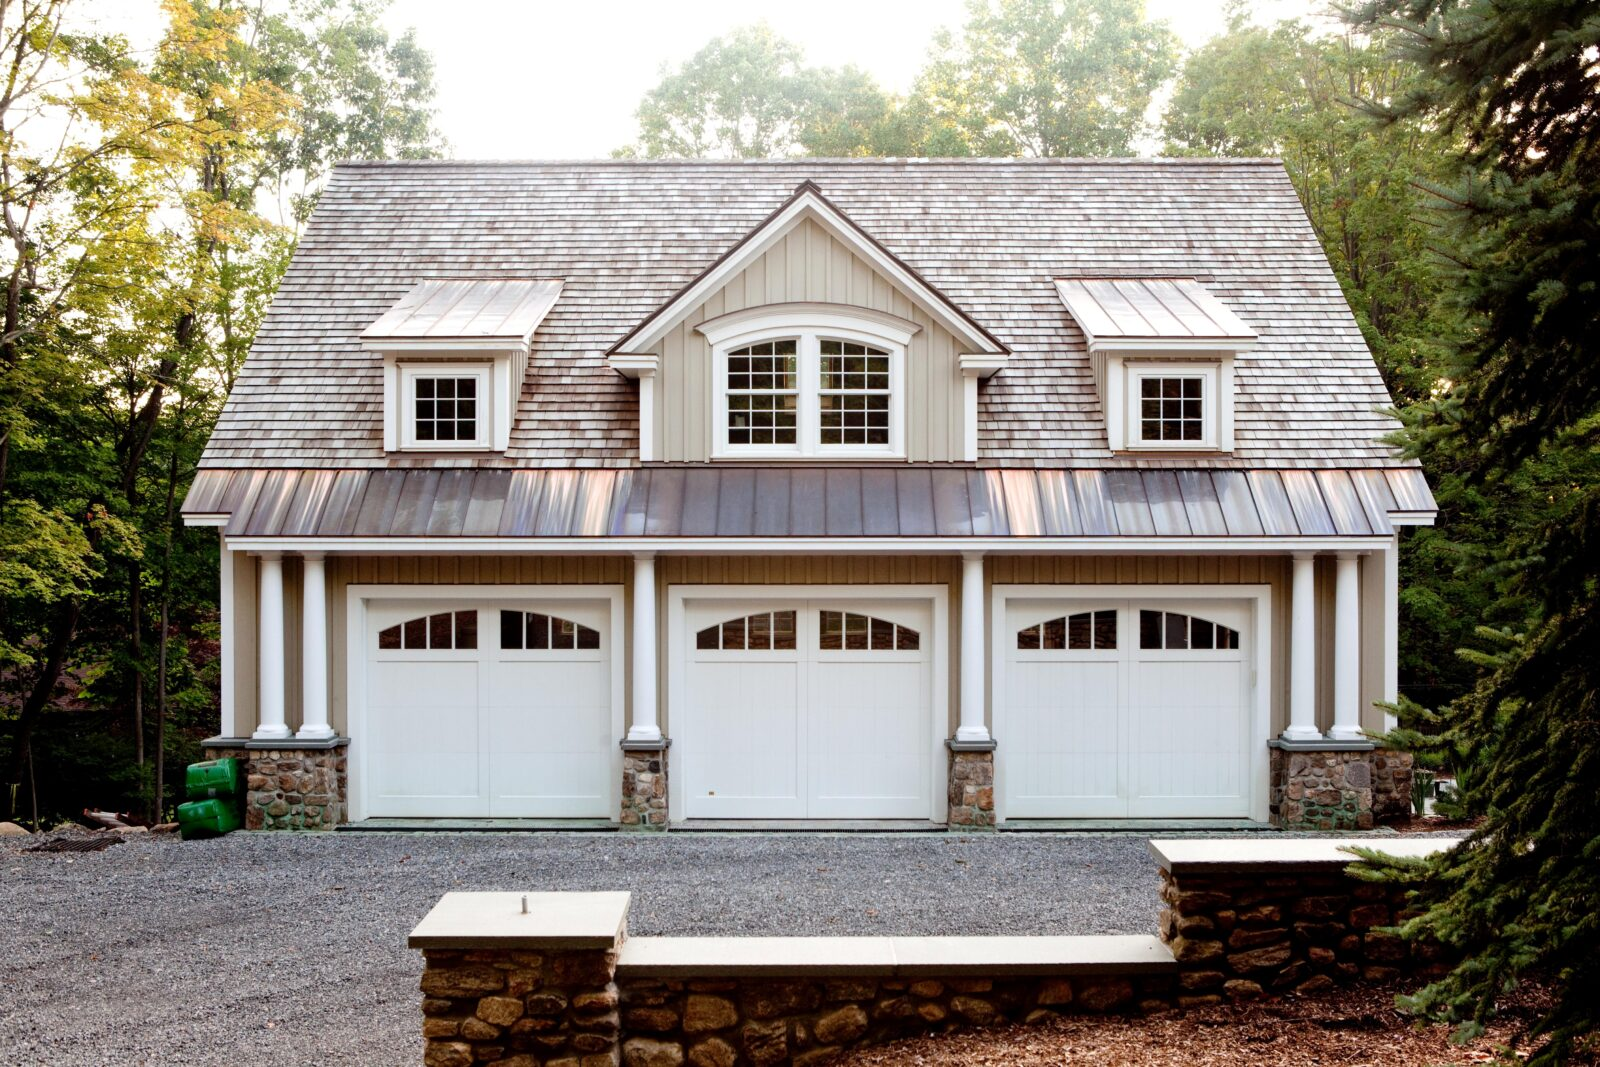 Barn carriage house joy studio design gallery best design for Carriage house garages